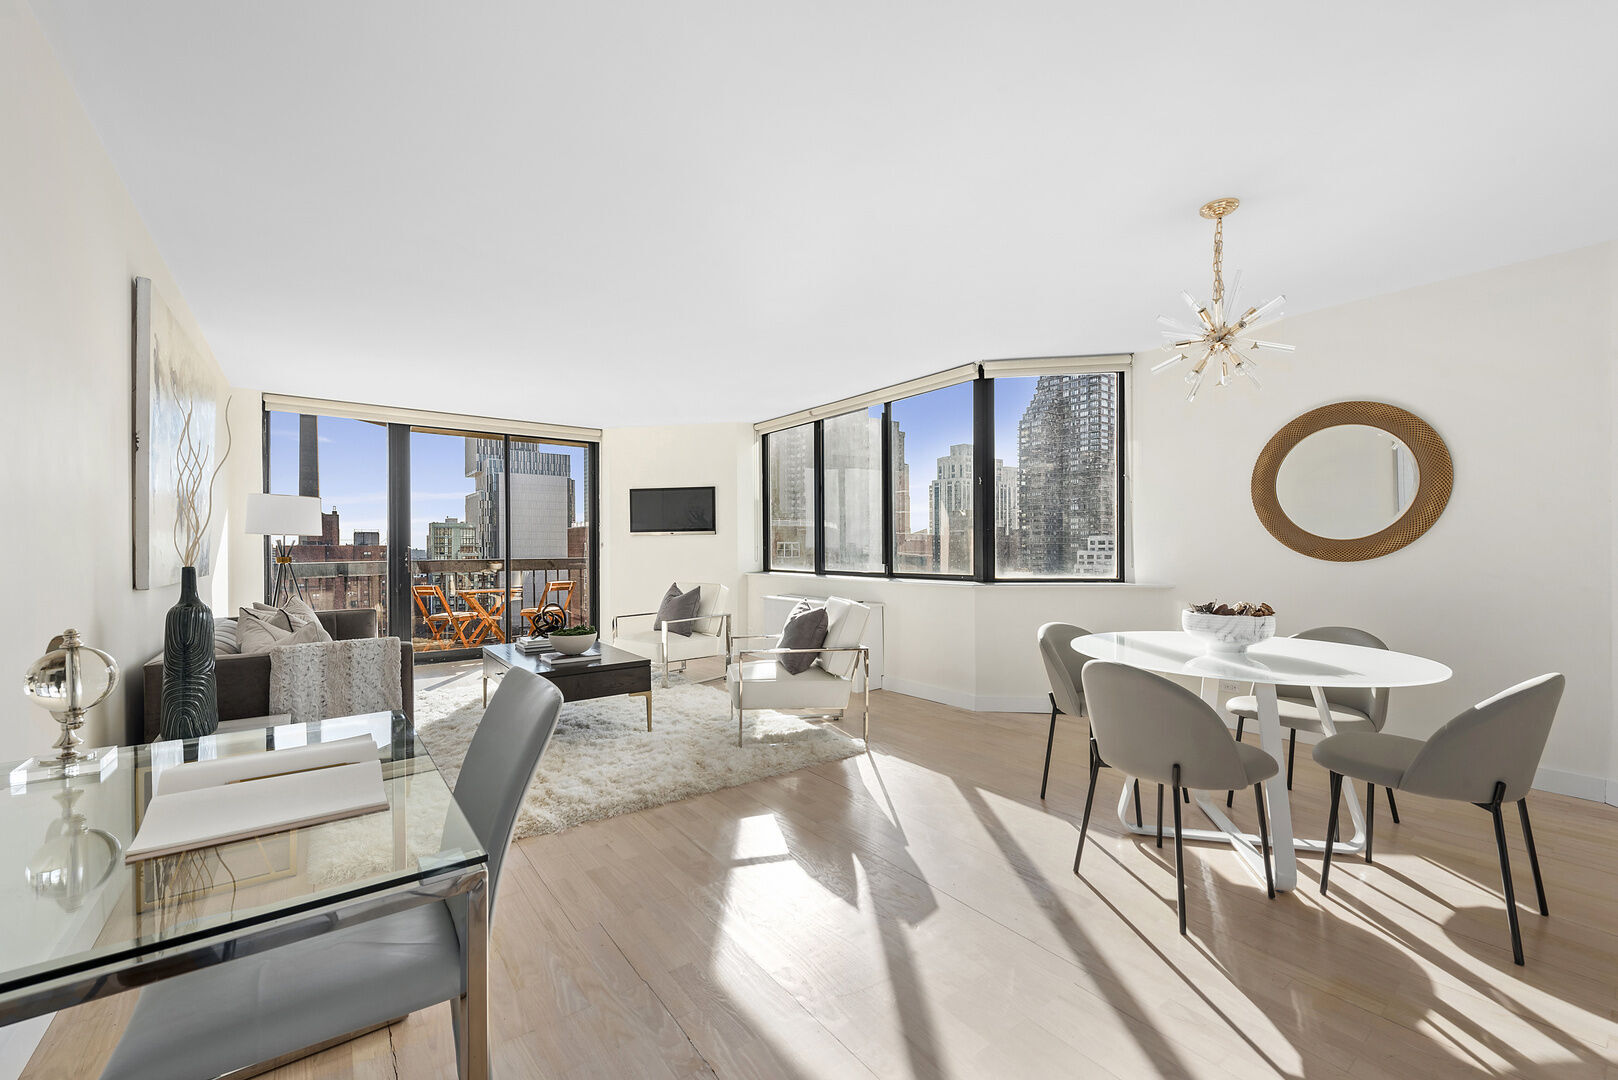 Apartment for sale at 330 East 75th Street, Apt 19-B